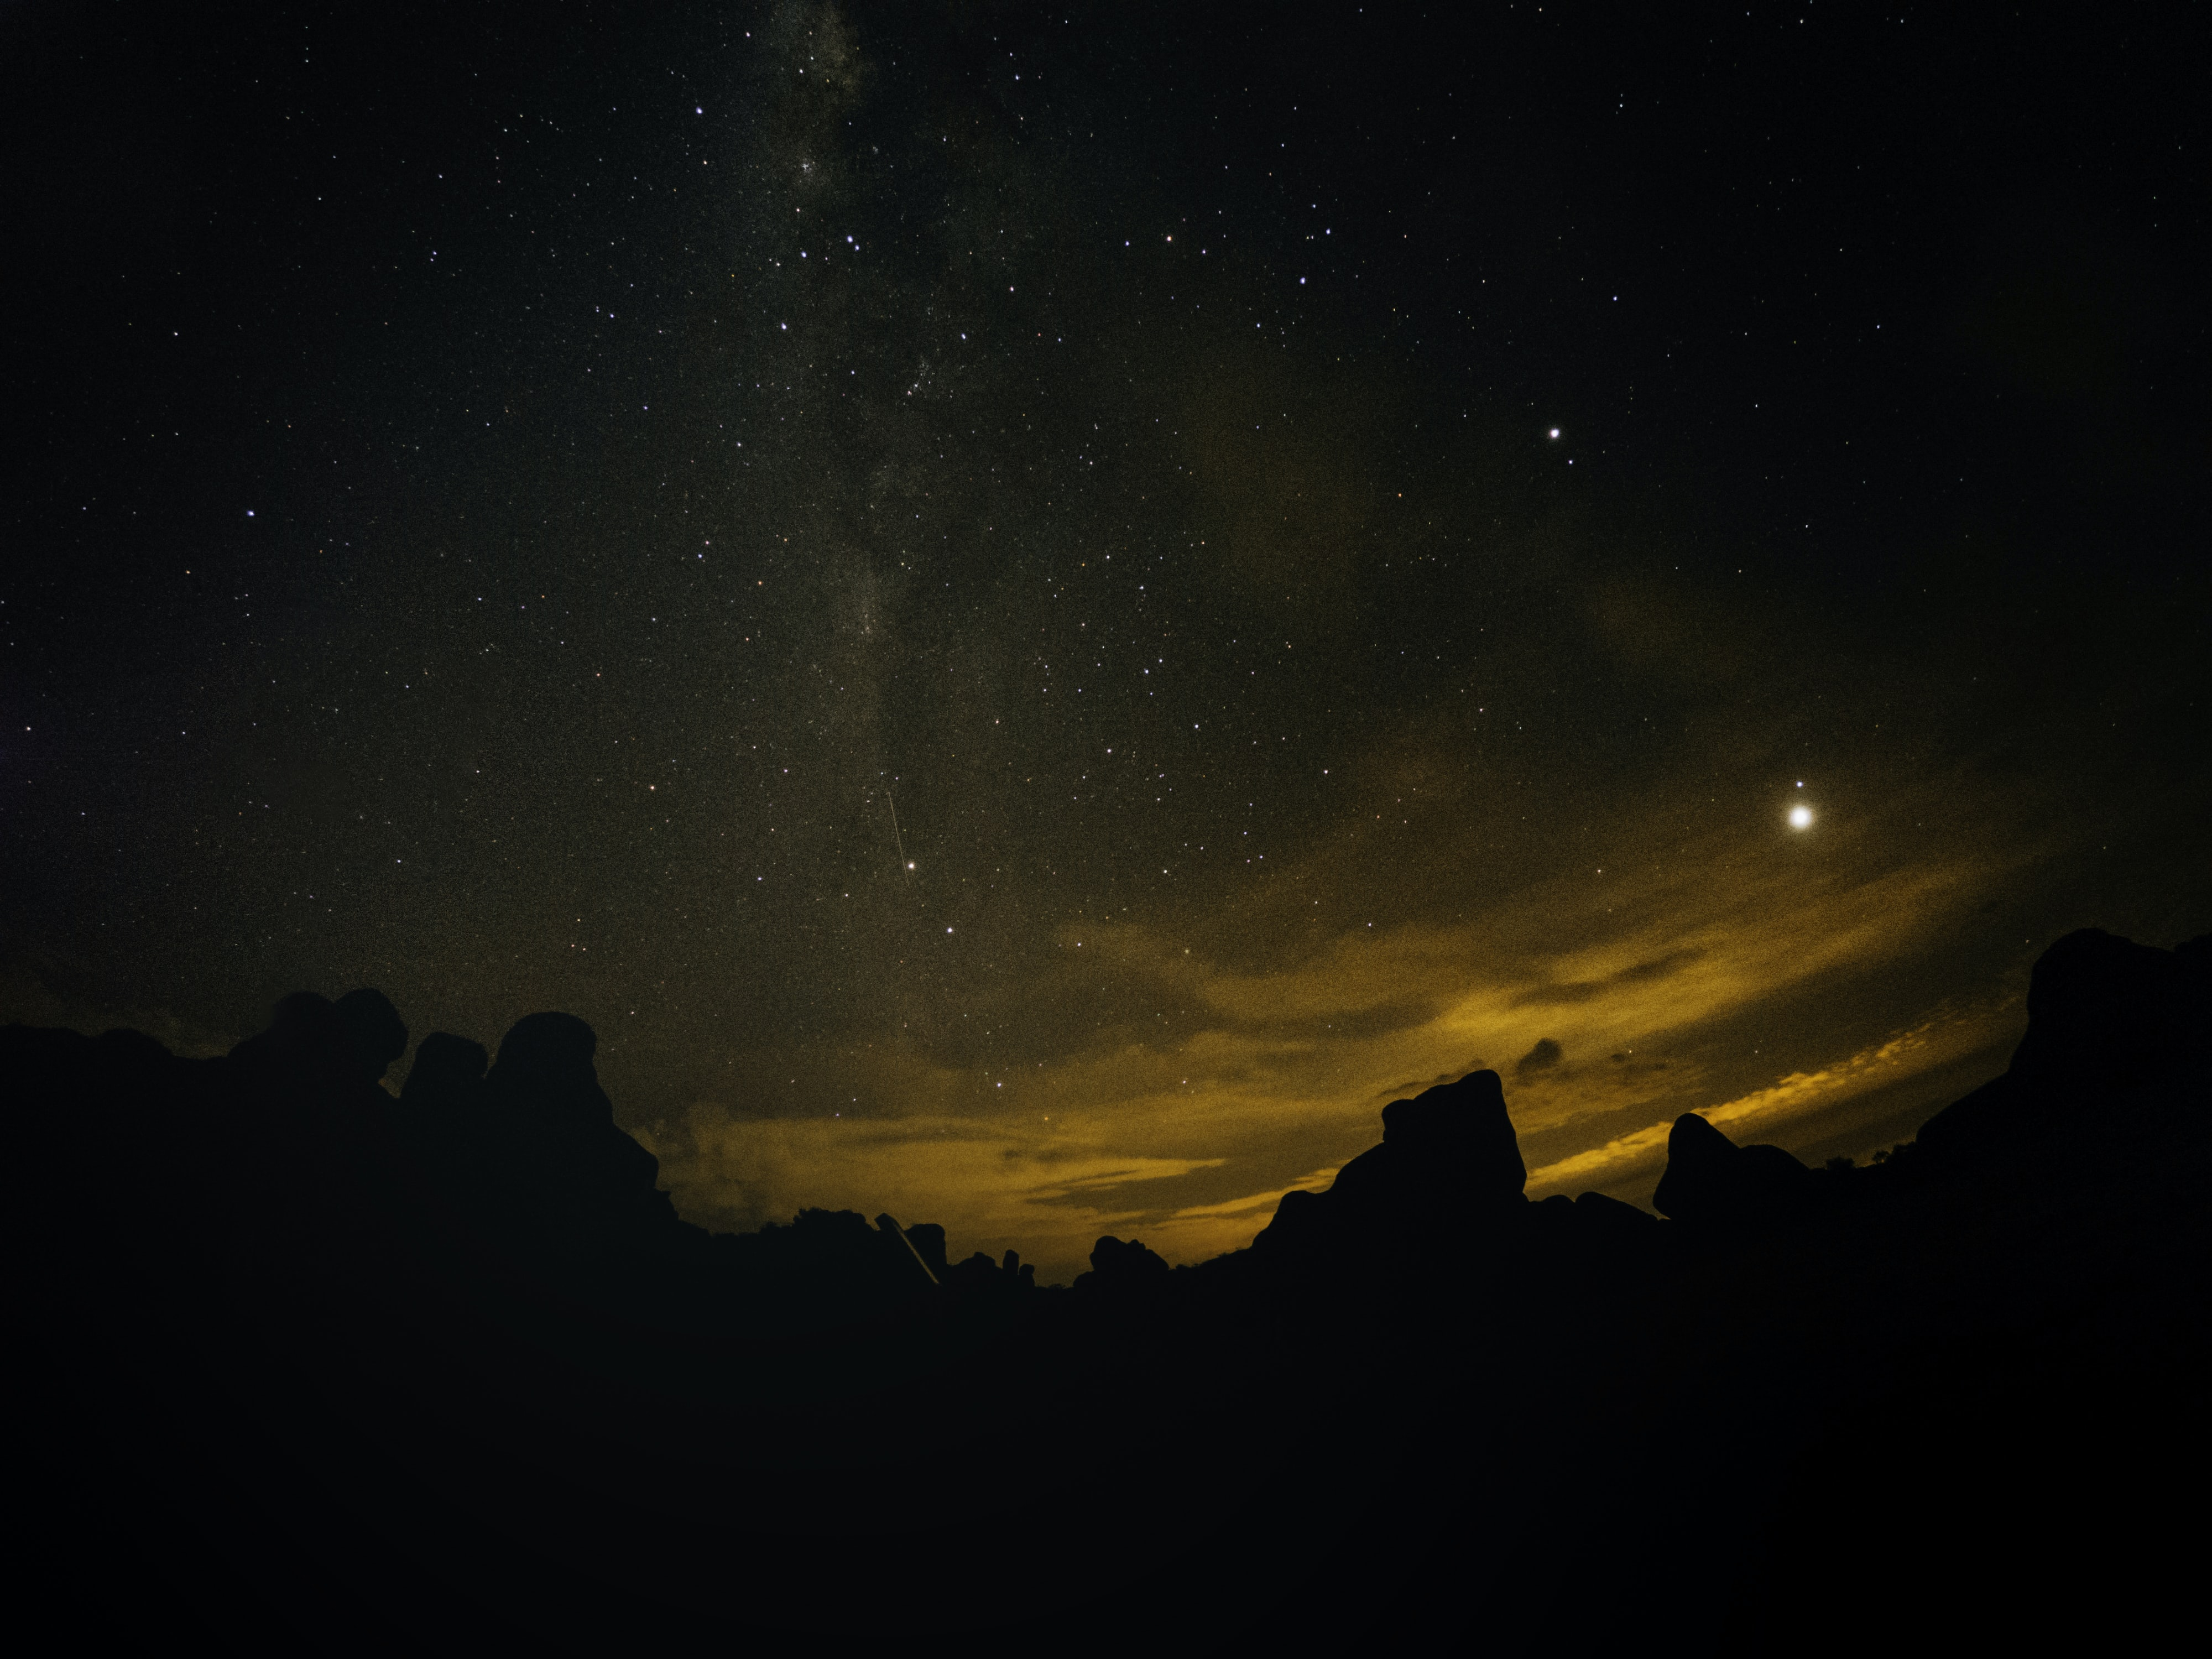 silhouette of mountains at nighttime